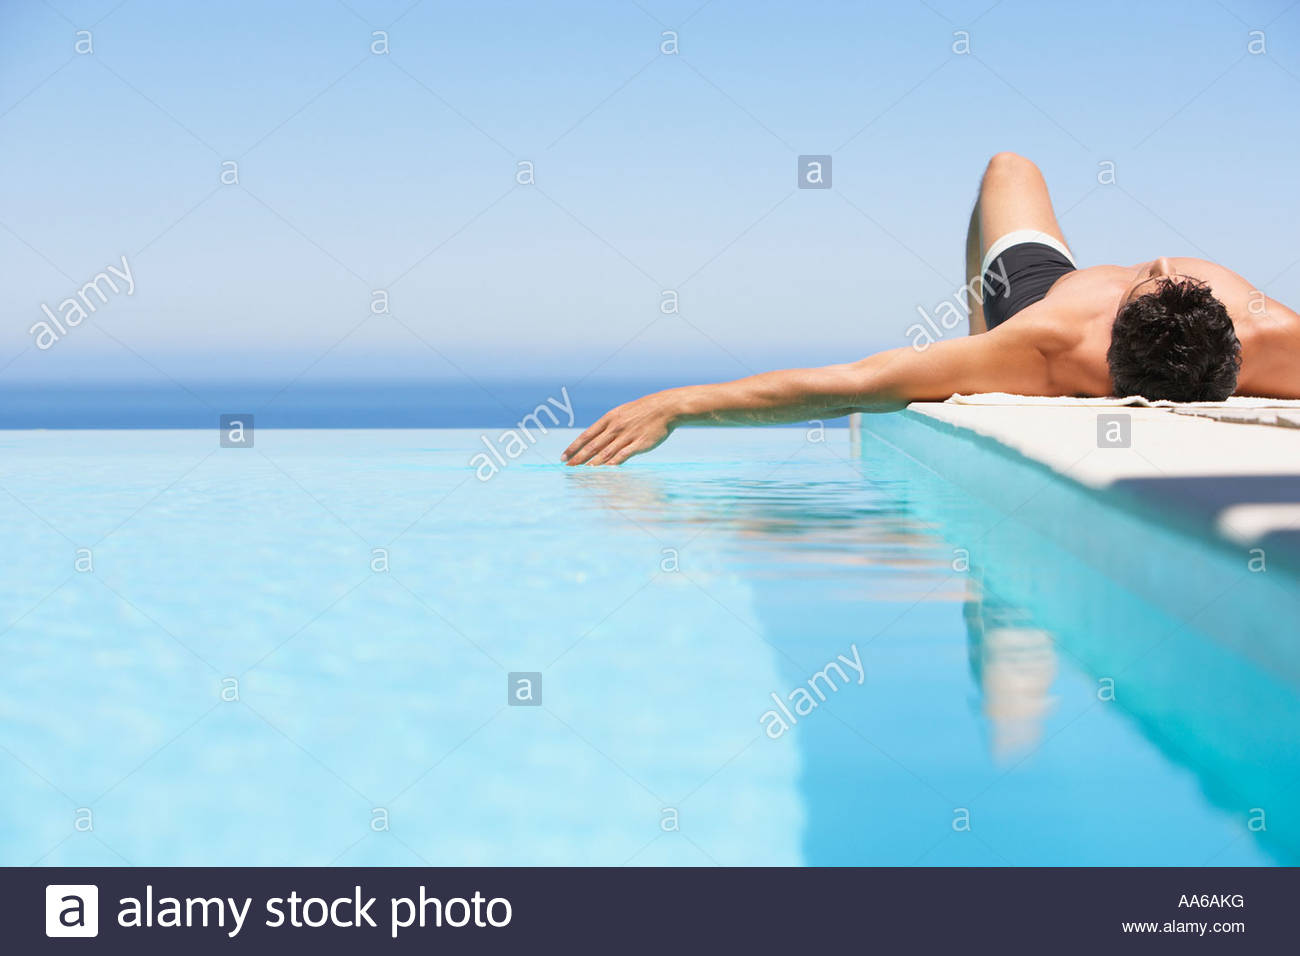 Man on infinity pool deck in swimsuit - Stock Image